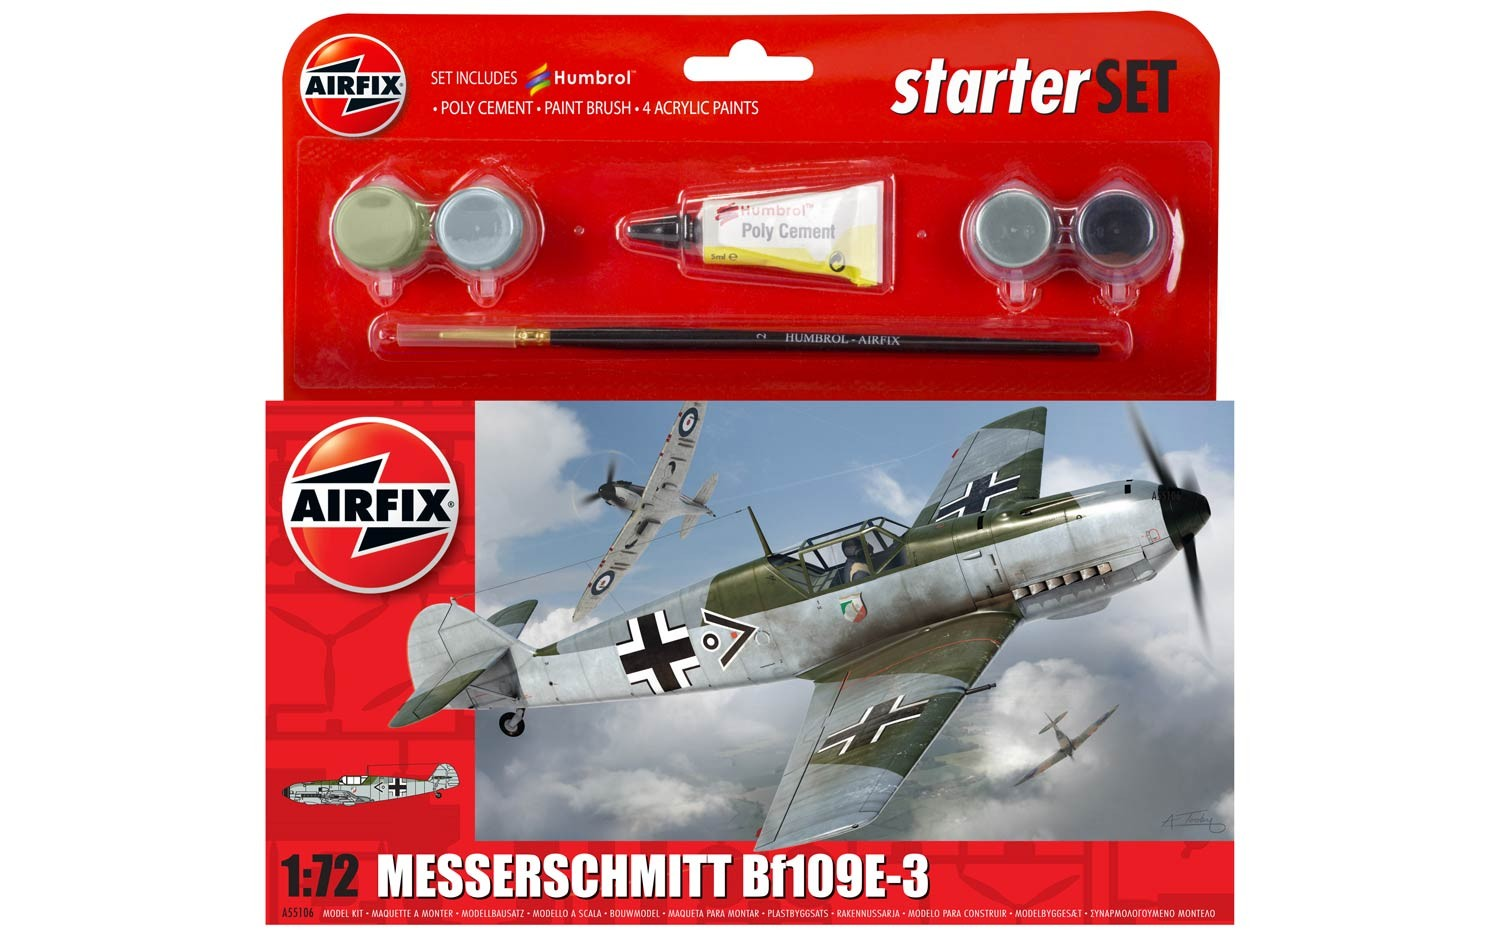 Airfix Messerschmitt Bf109E-3 Starter Set 1:72nd Scale.